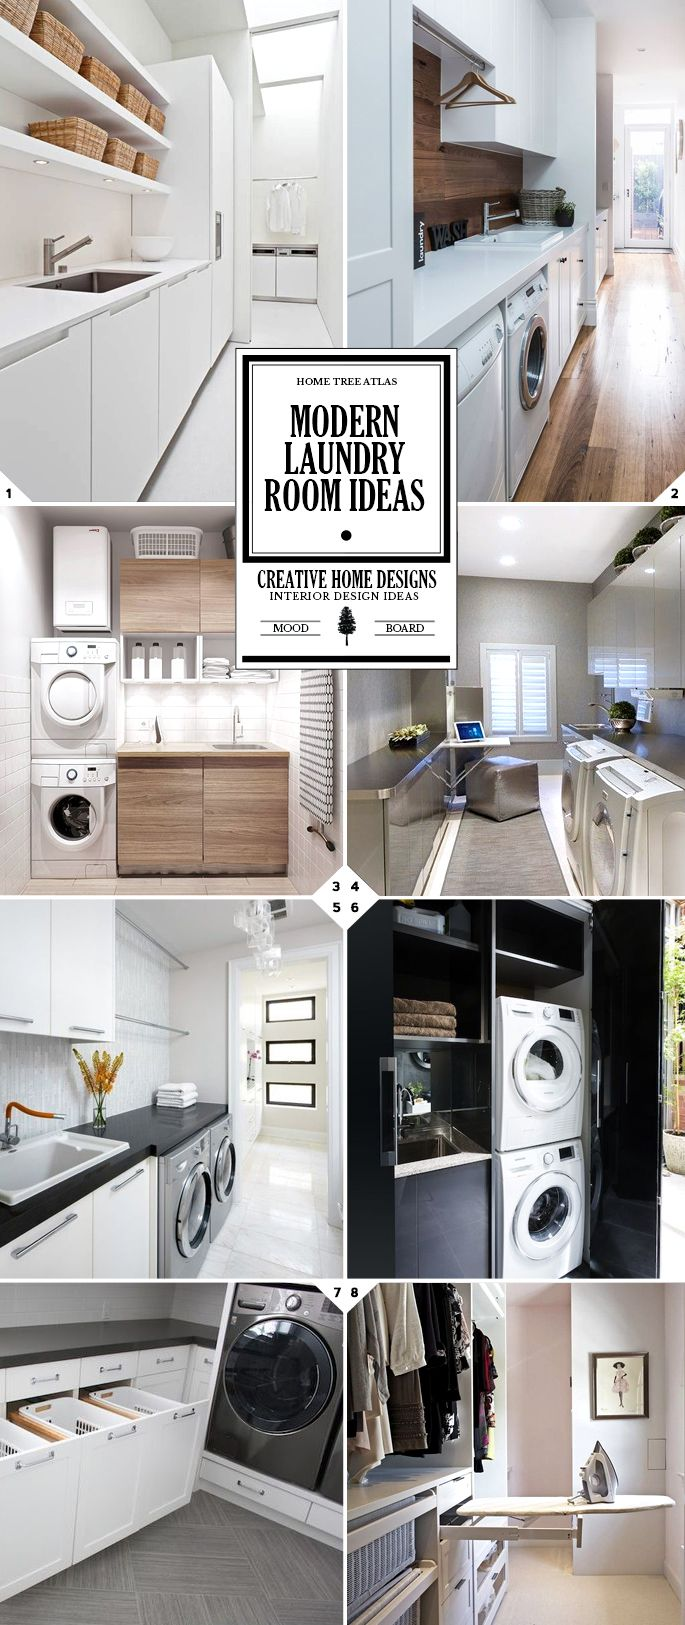 Style Guide Modern Laundry Room Ideas And Storage Tips